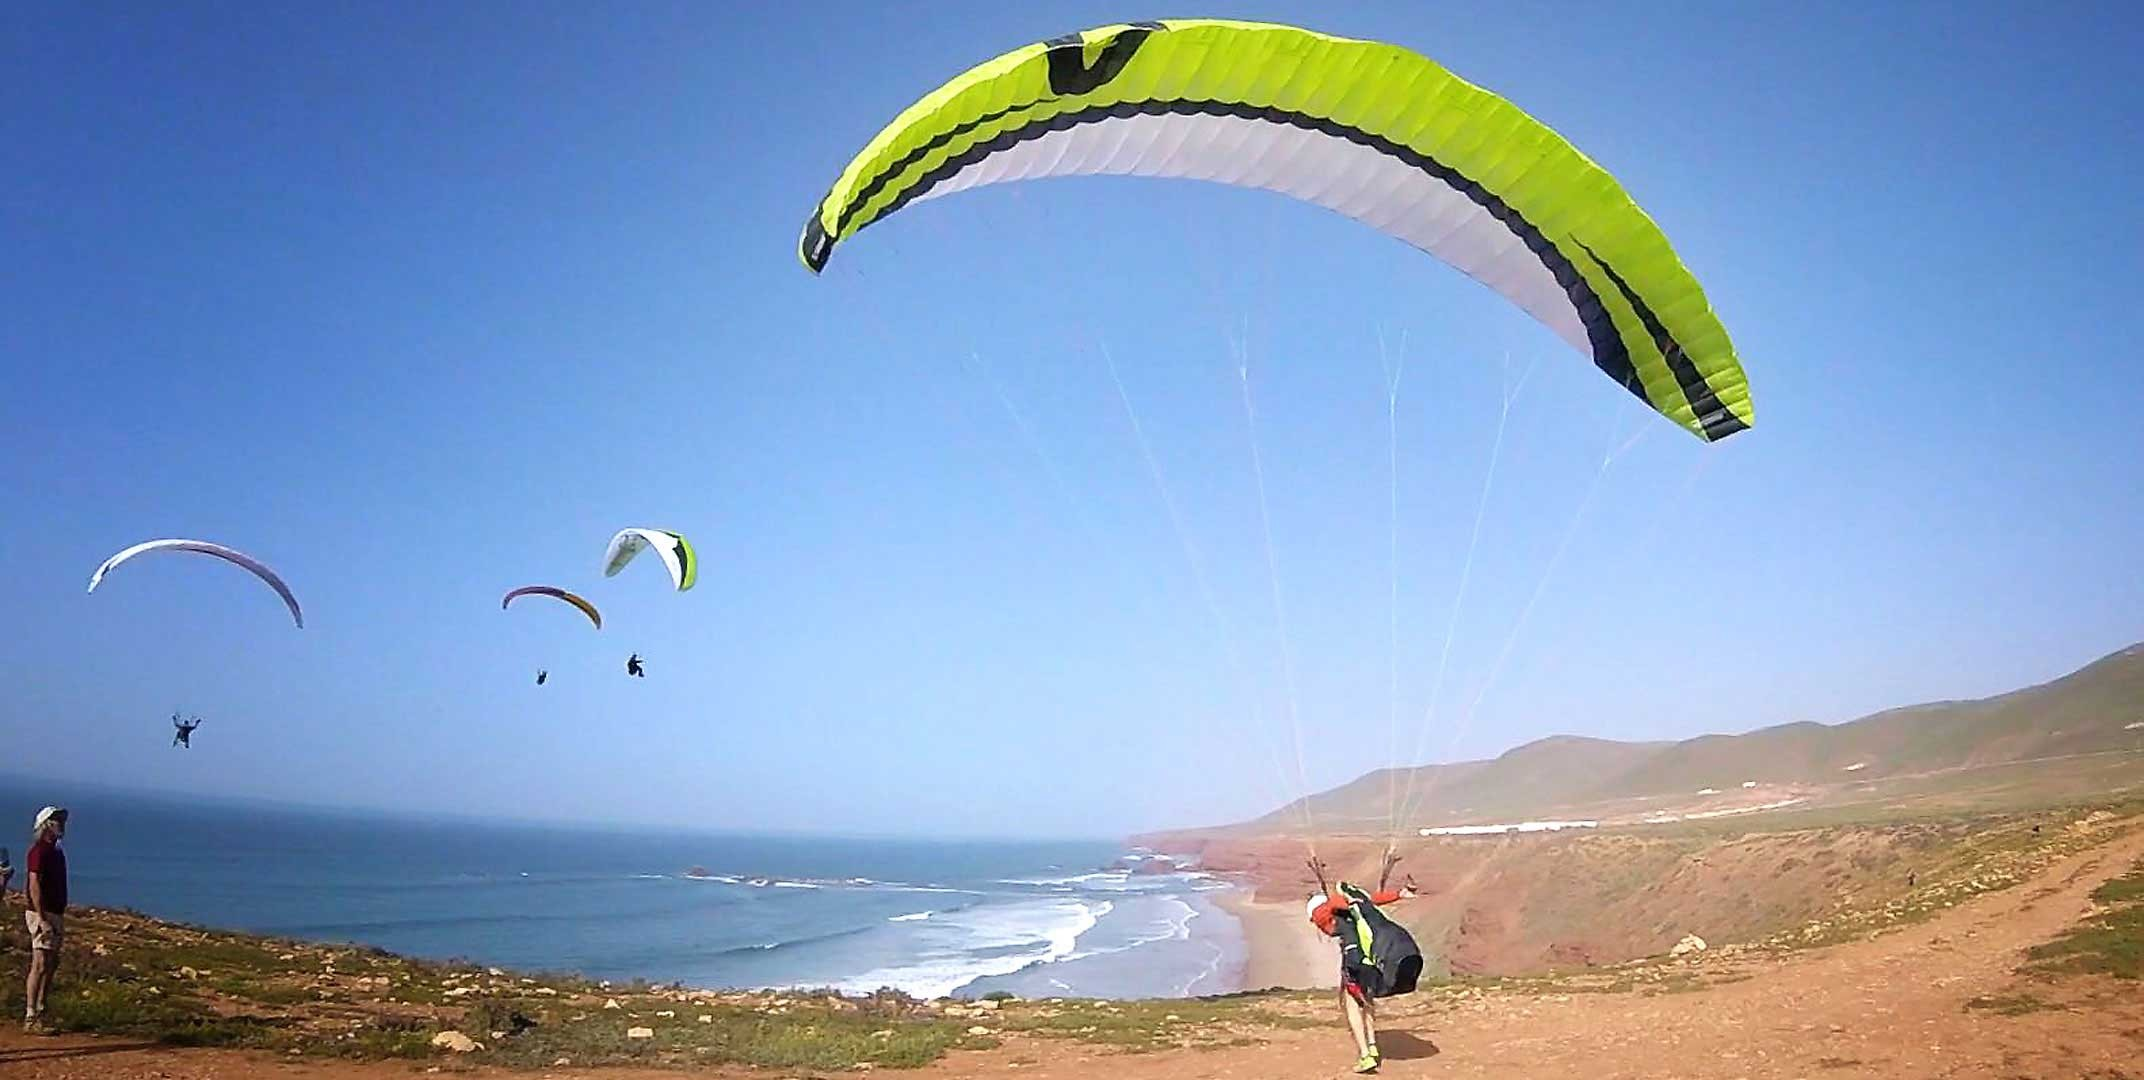 Sellettes parapente